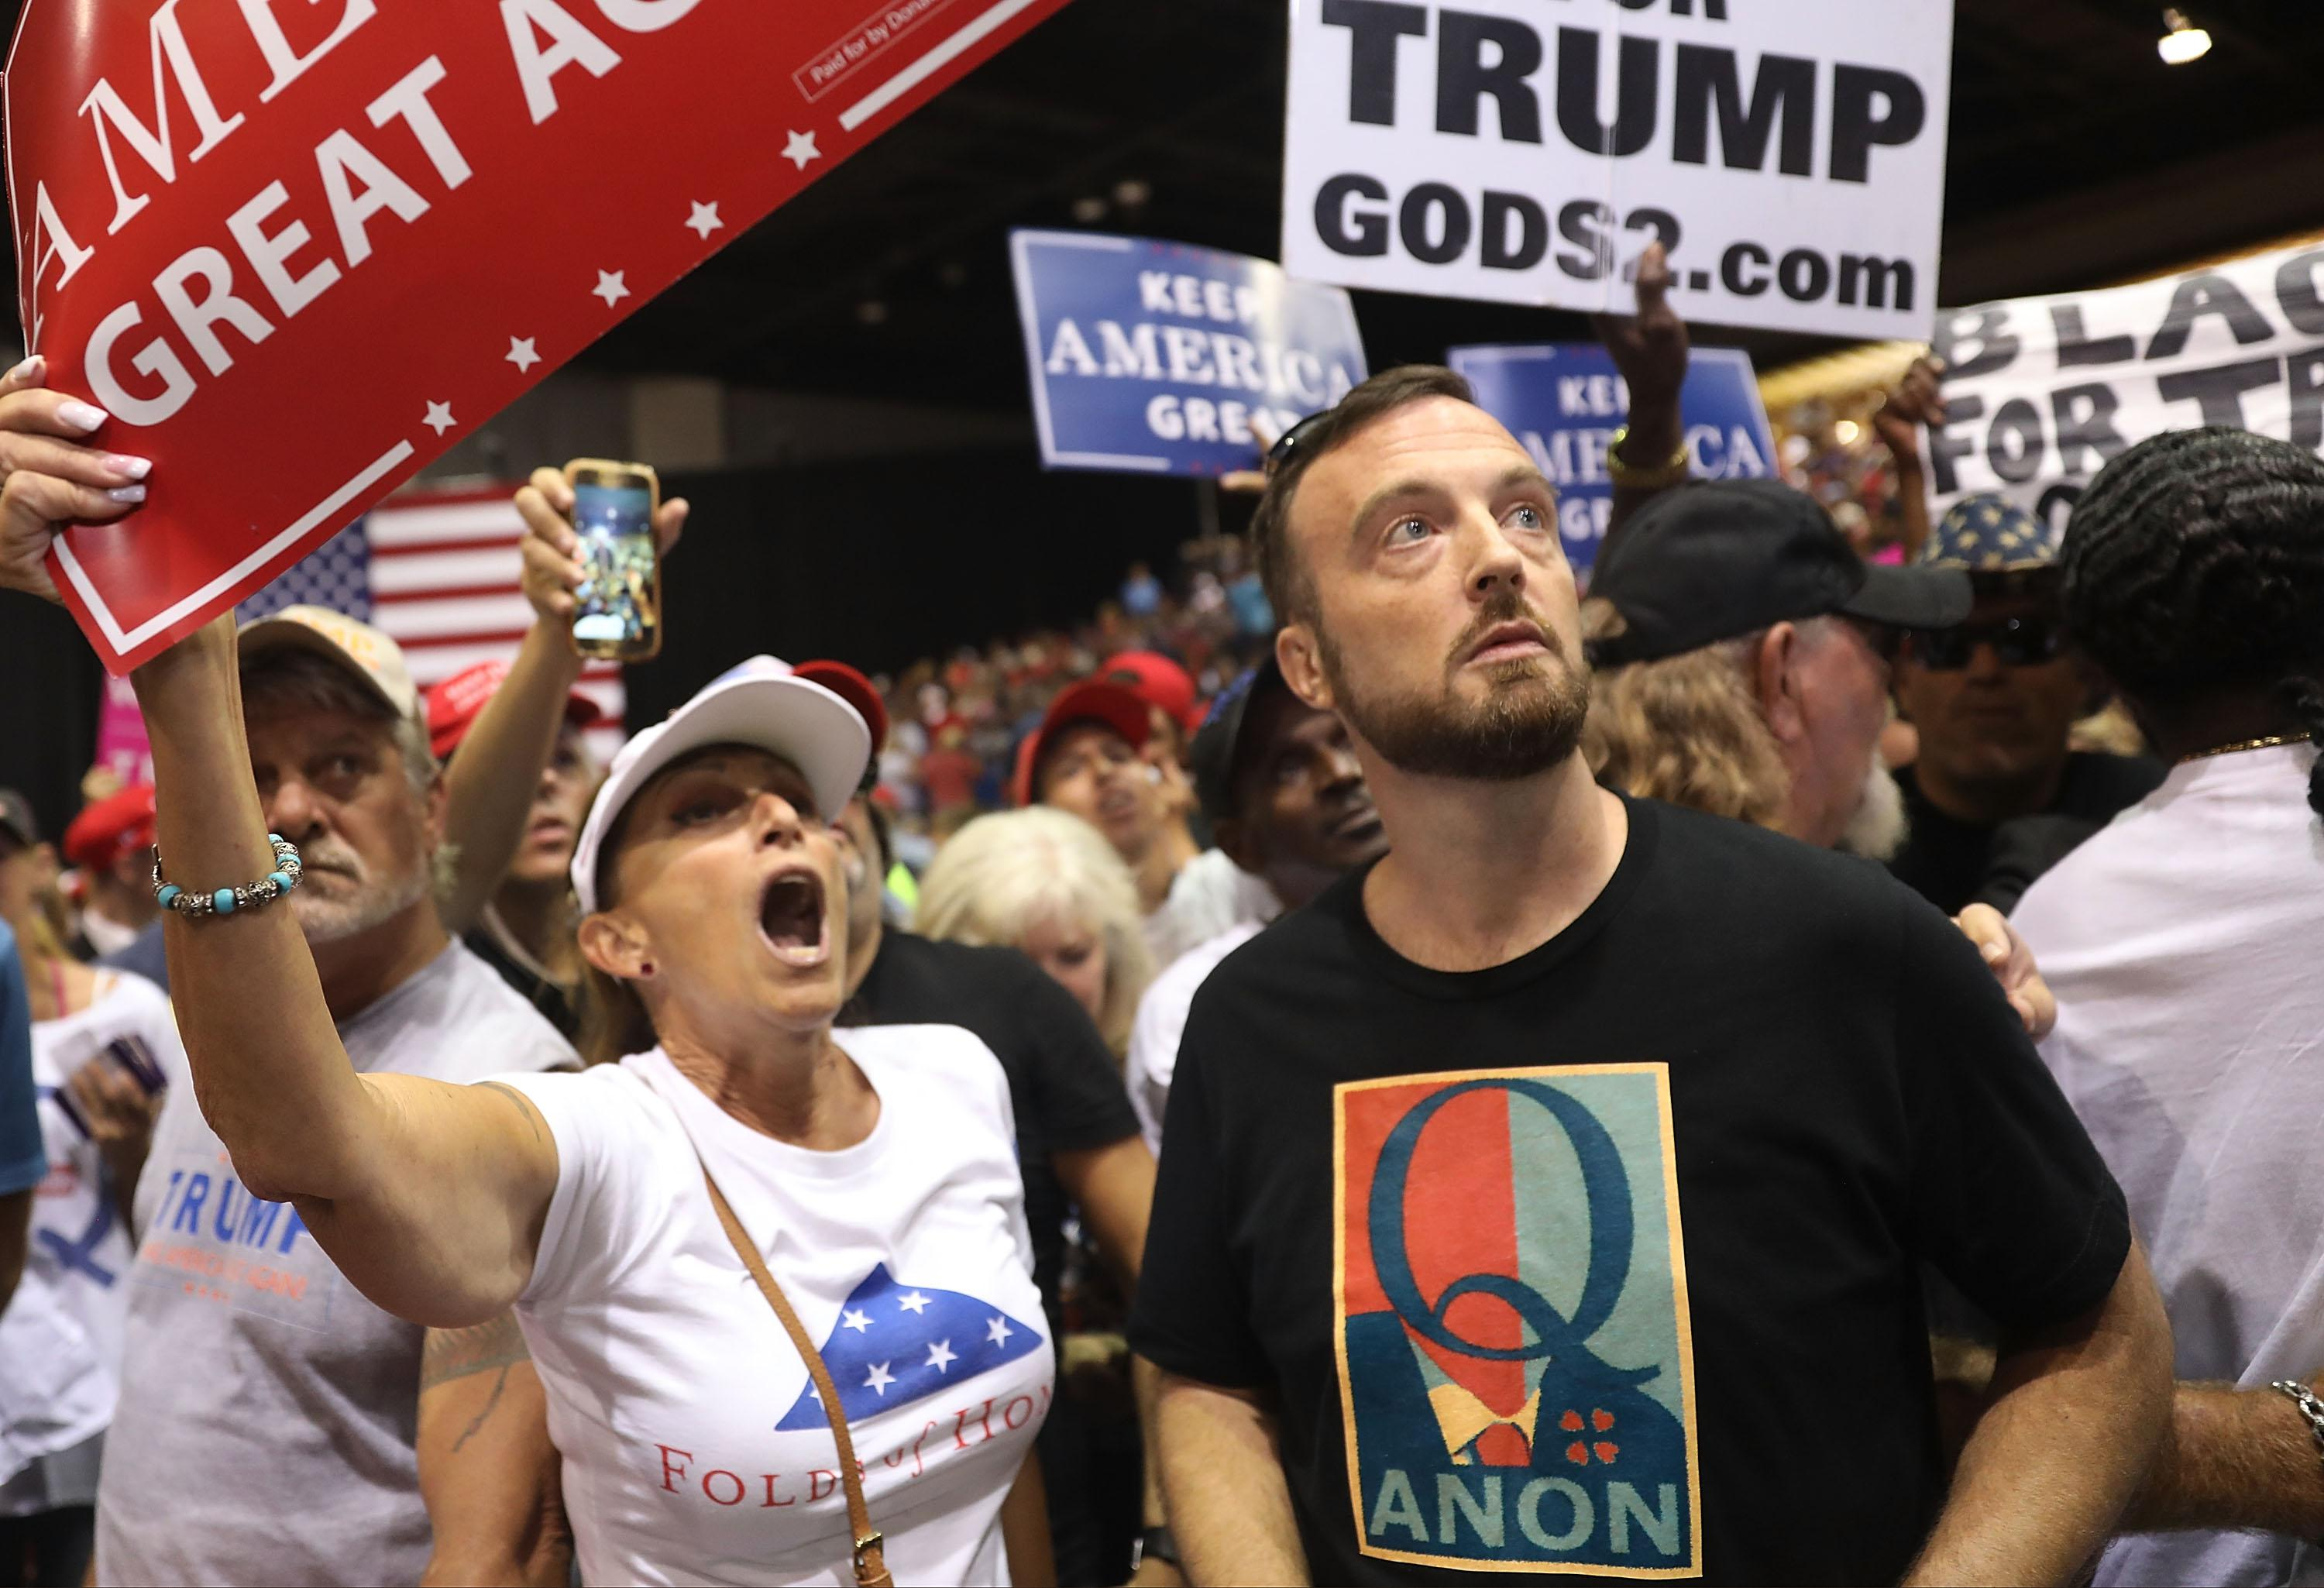 TAMPA, FL - JULY 31:  A man wear a shirt with the words Q Anon as he attends a rally for President Donald Trump at the Make America Great Again Rally being held in the Florida State Fair Grounds Expo Hall on July 31, 2018 in Tampa, Florida.  Some people attending either wore shirts with a Q or held signs with a Q and are reported to be part of a conspiracy theory group.  (Photo by Joe Raedle/Getty Images)